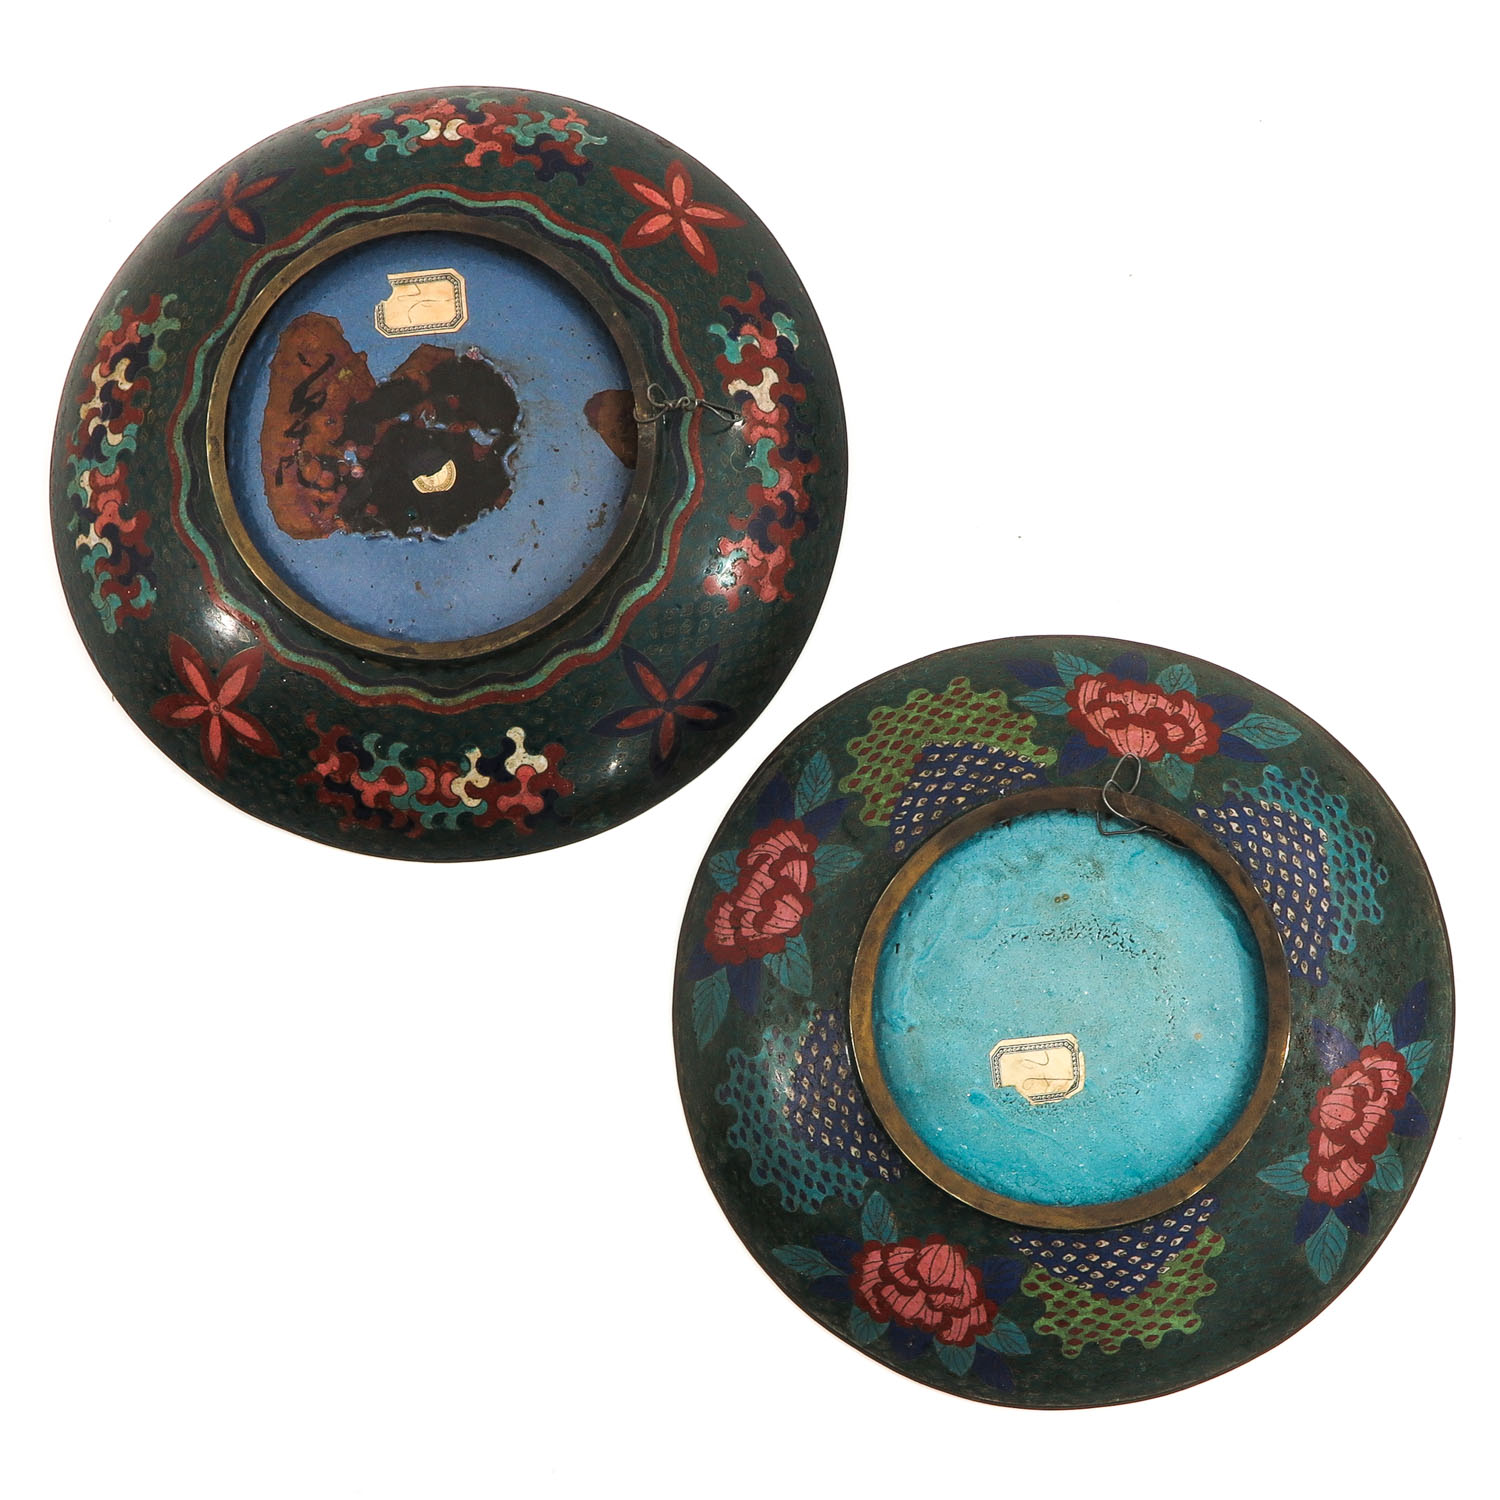 A Pair of Cloisonne Chargers - Image 2 of 10